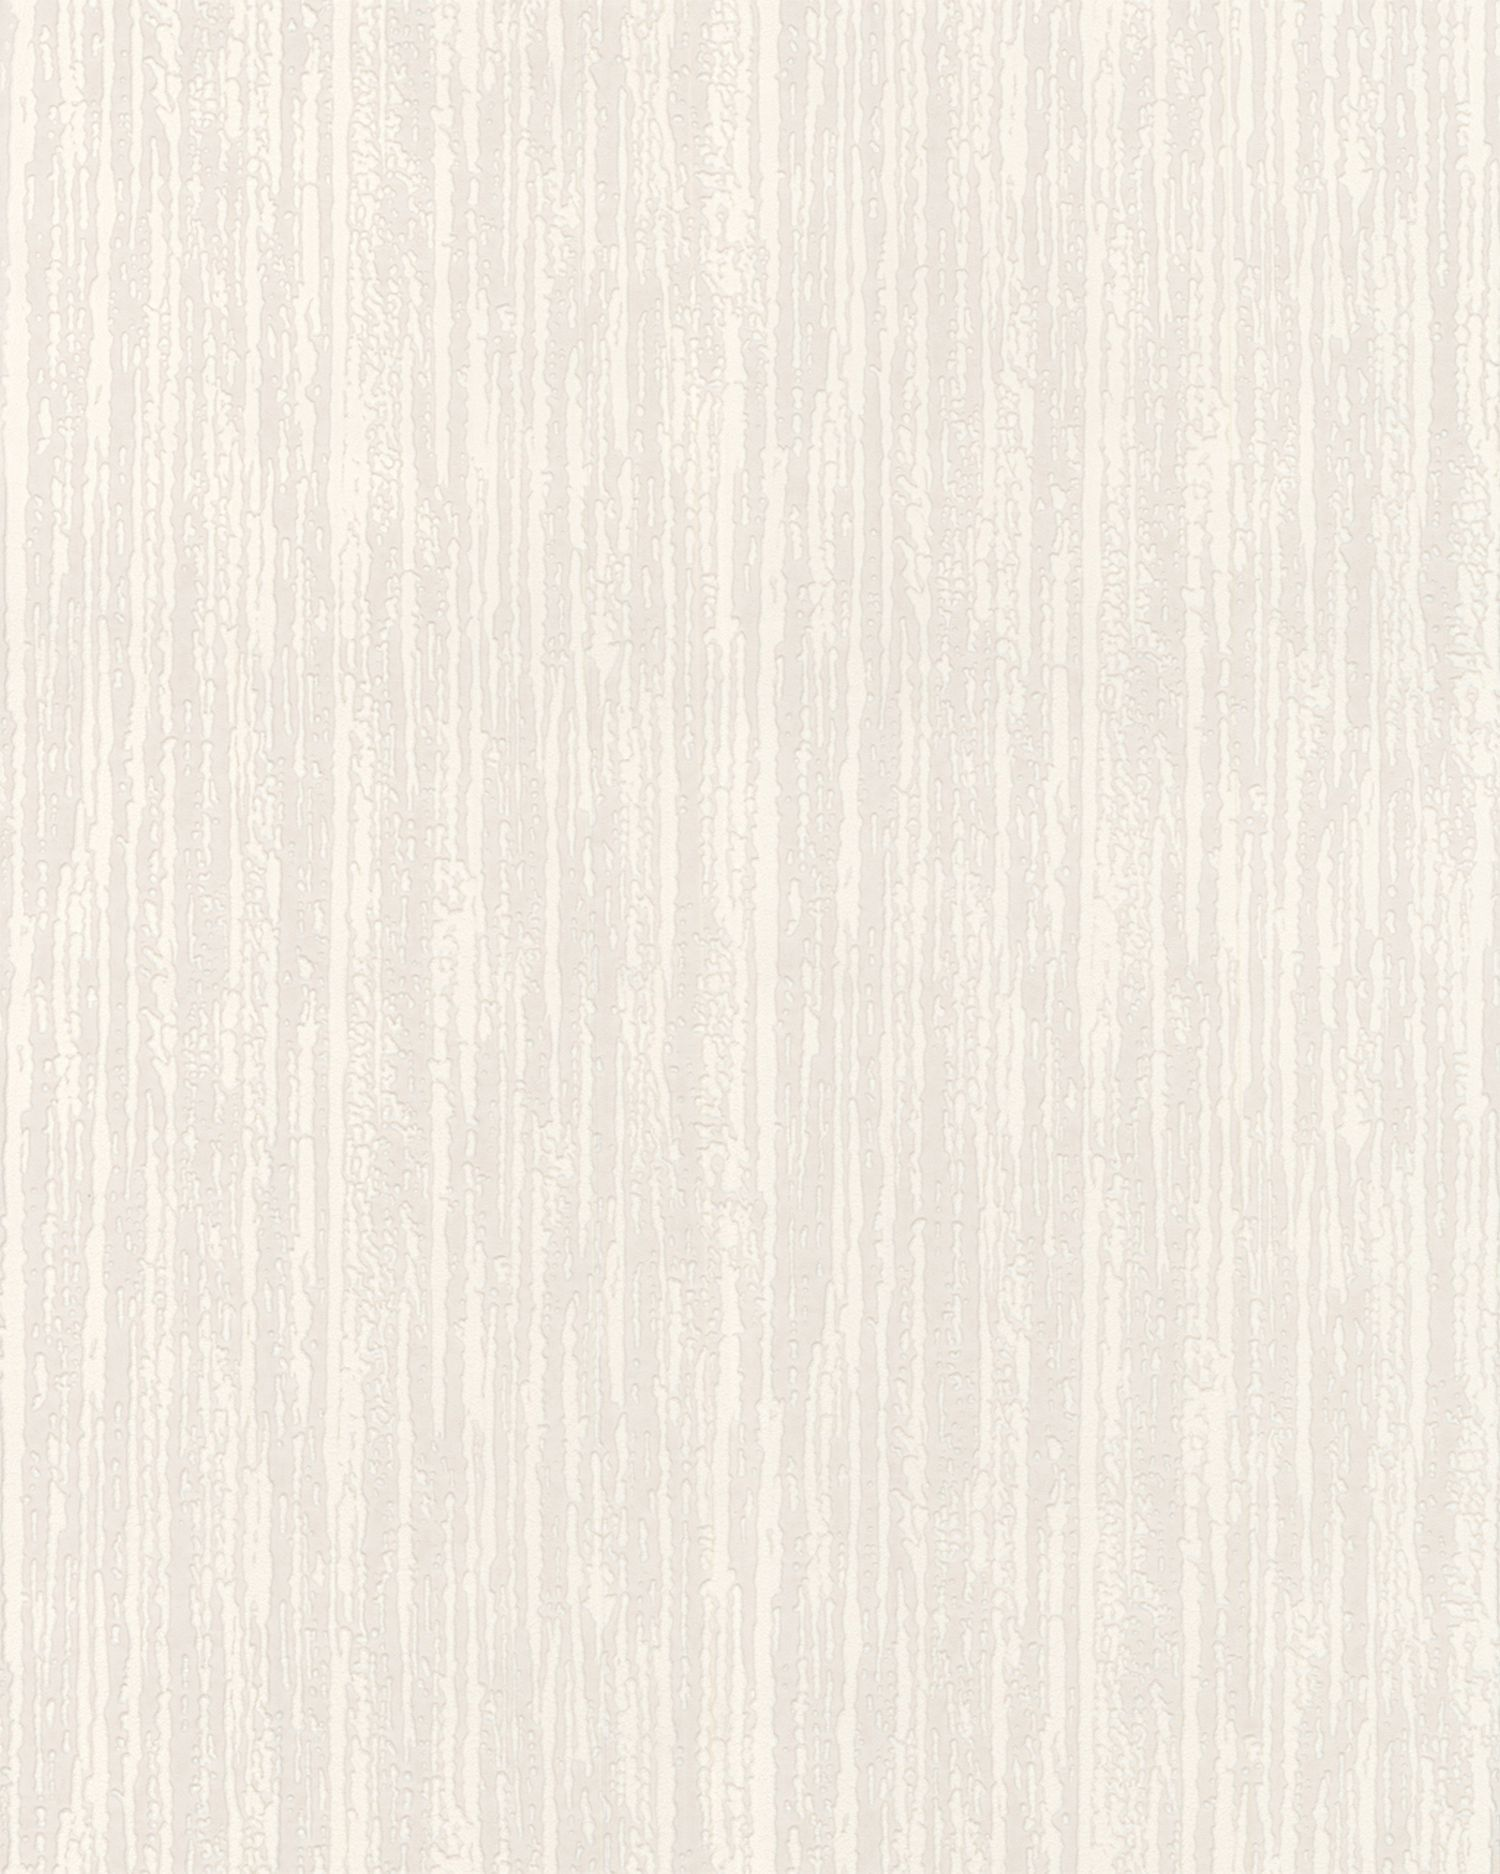 White Bark wallpaper